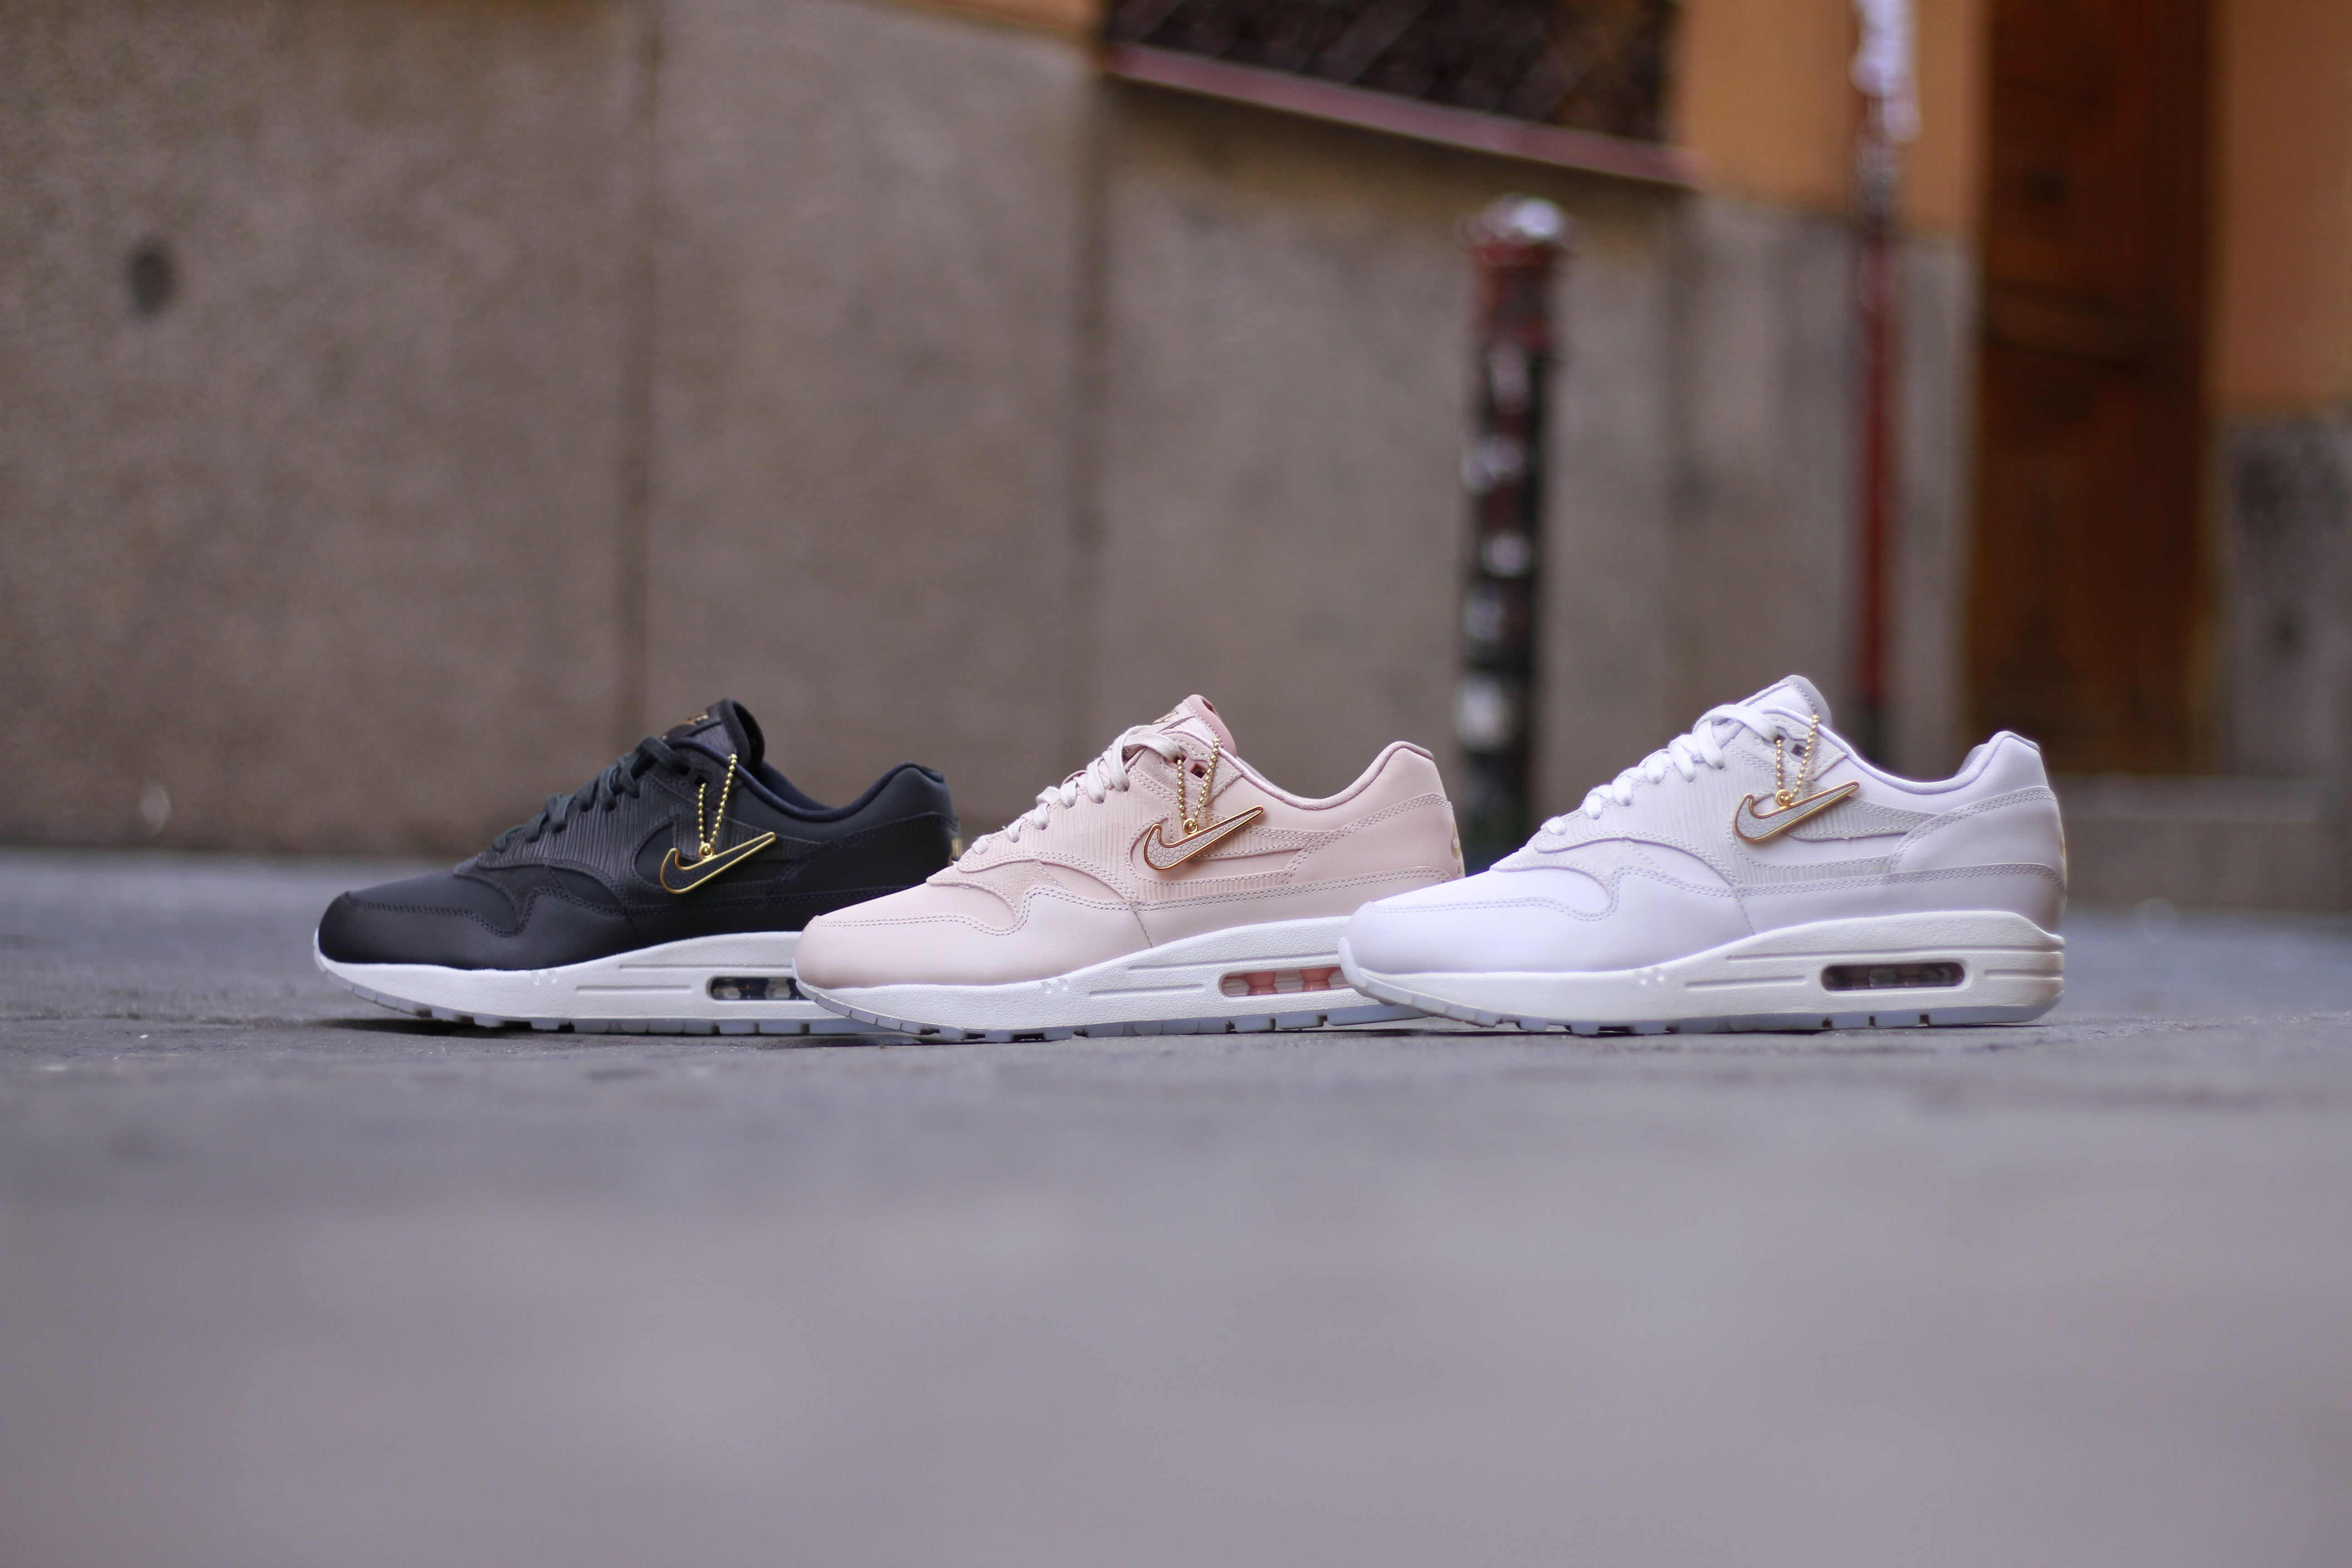 nike Air Max 1 PRM winter pack 2018. Now available in our